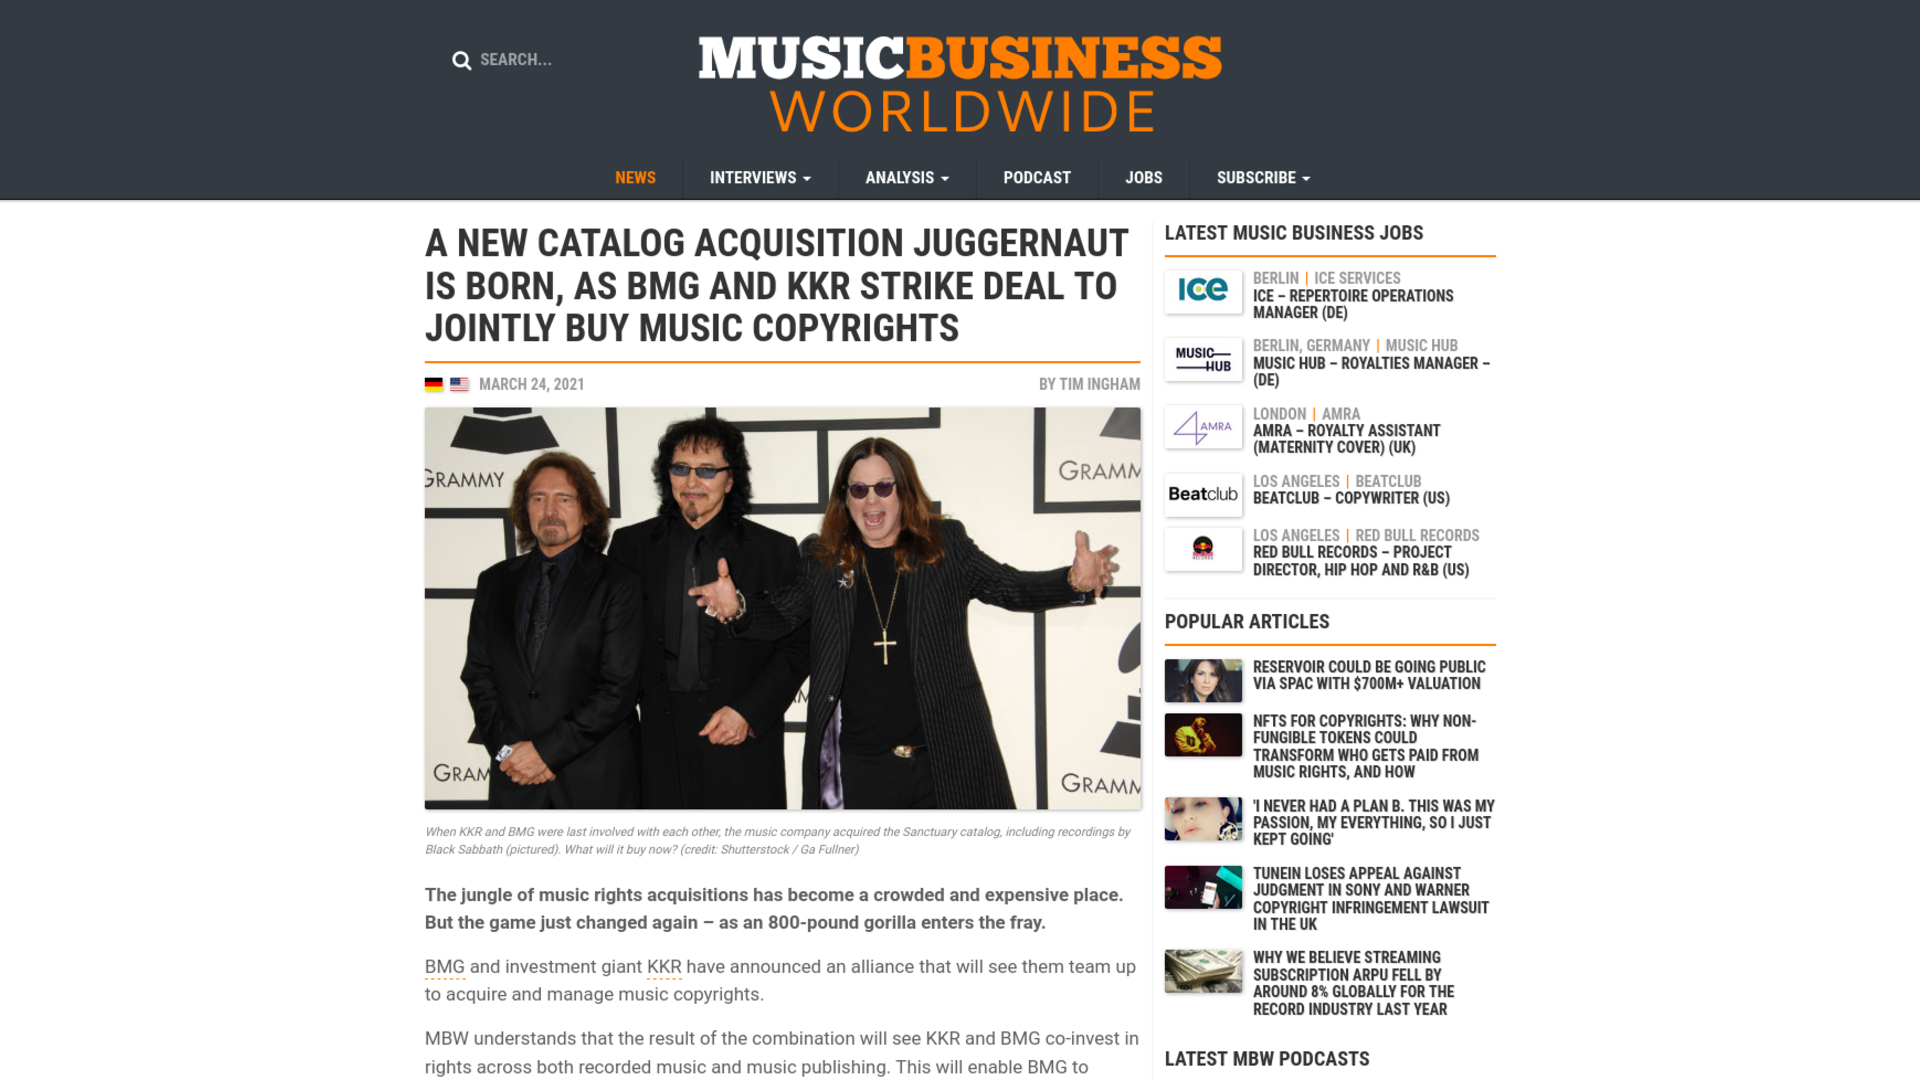 Fairness Rocks News A new catalog acquisition juggernaut is born, as BMG and KKR strike deal to jointly buy music copyrights